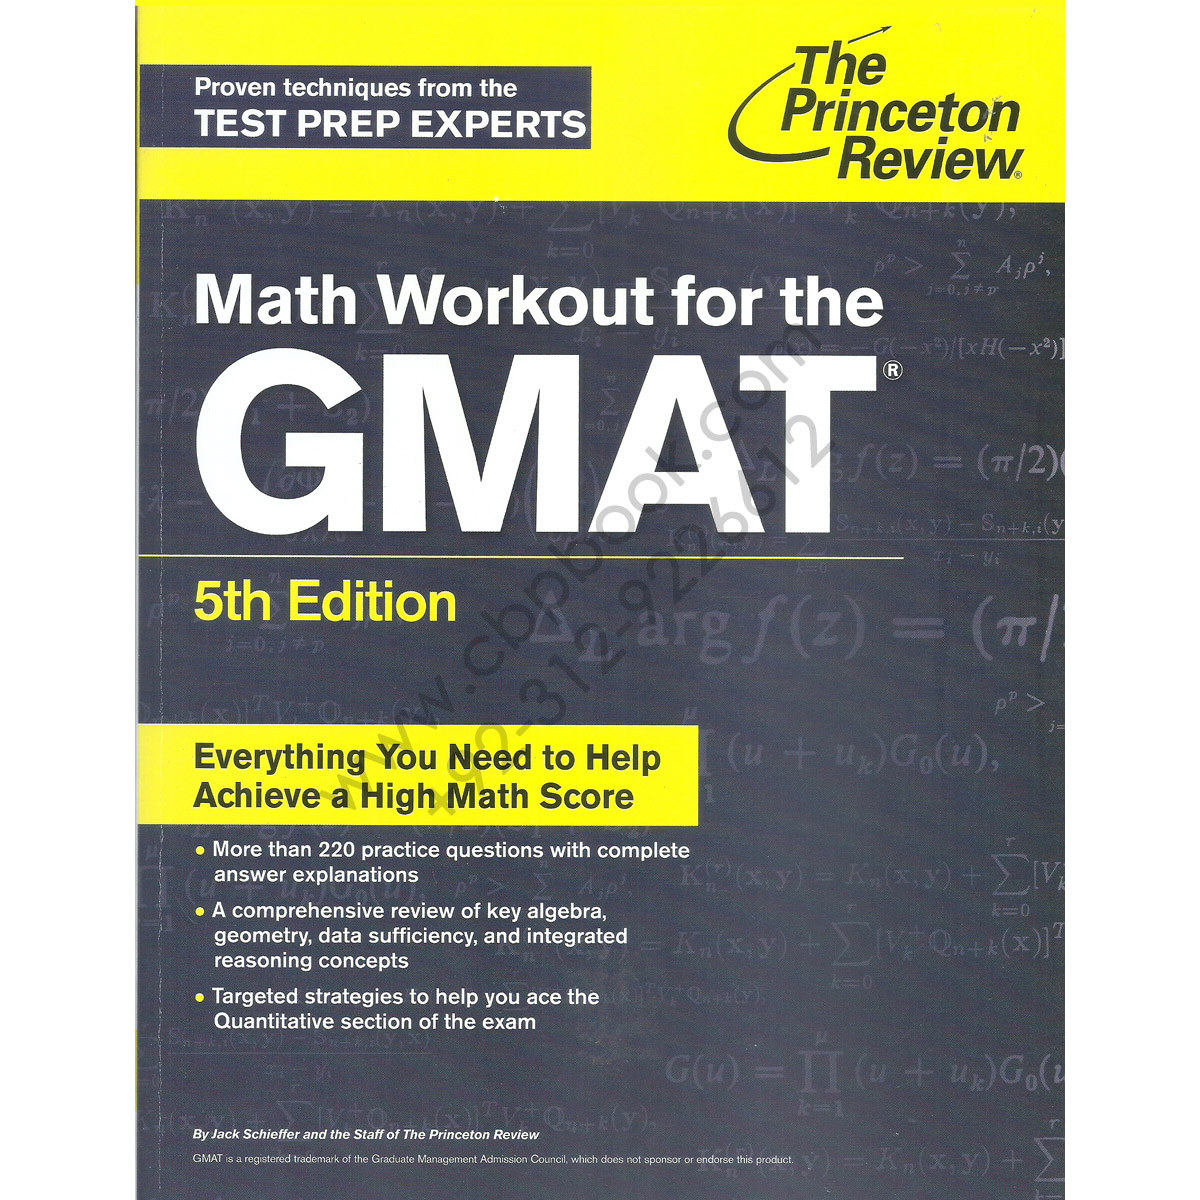 the princeton review math workout for the gmat 5th edition